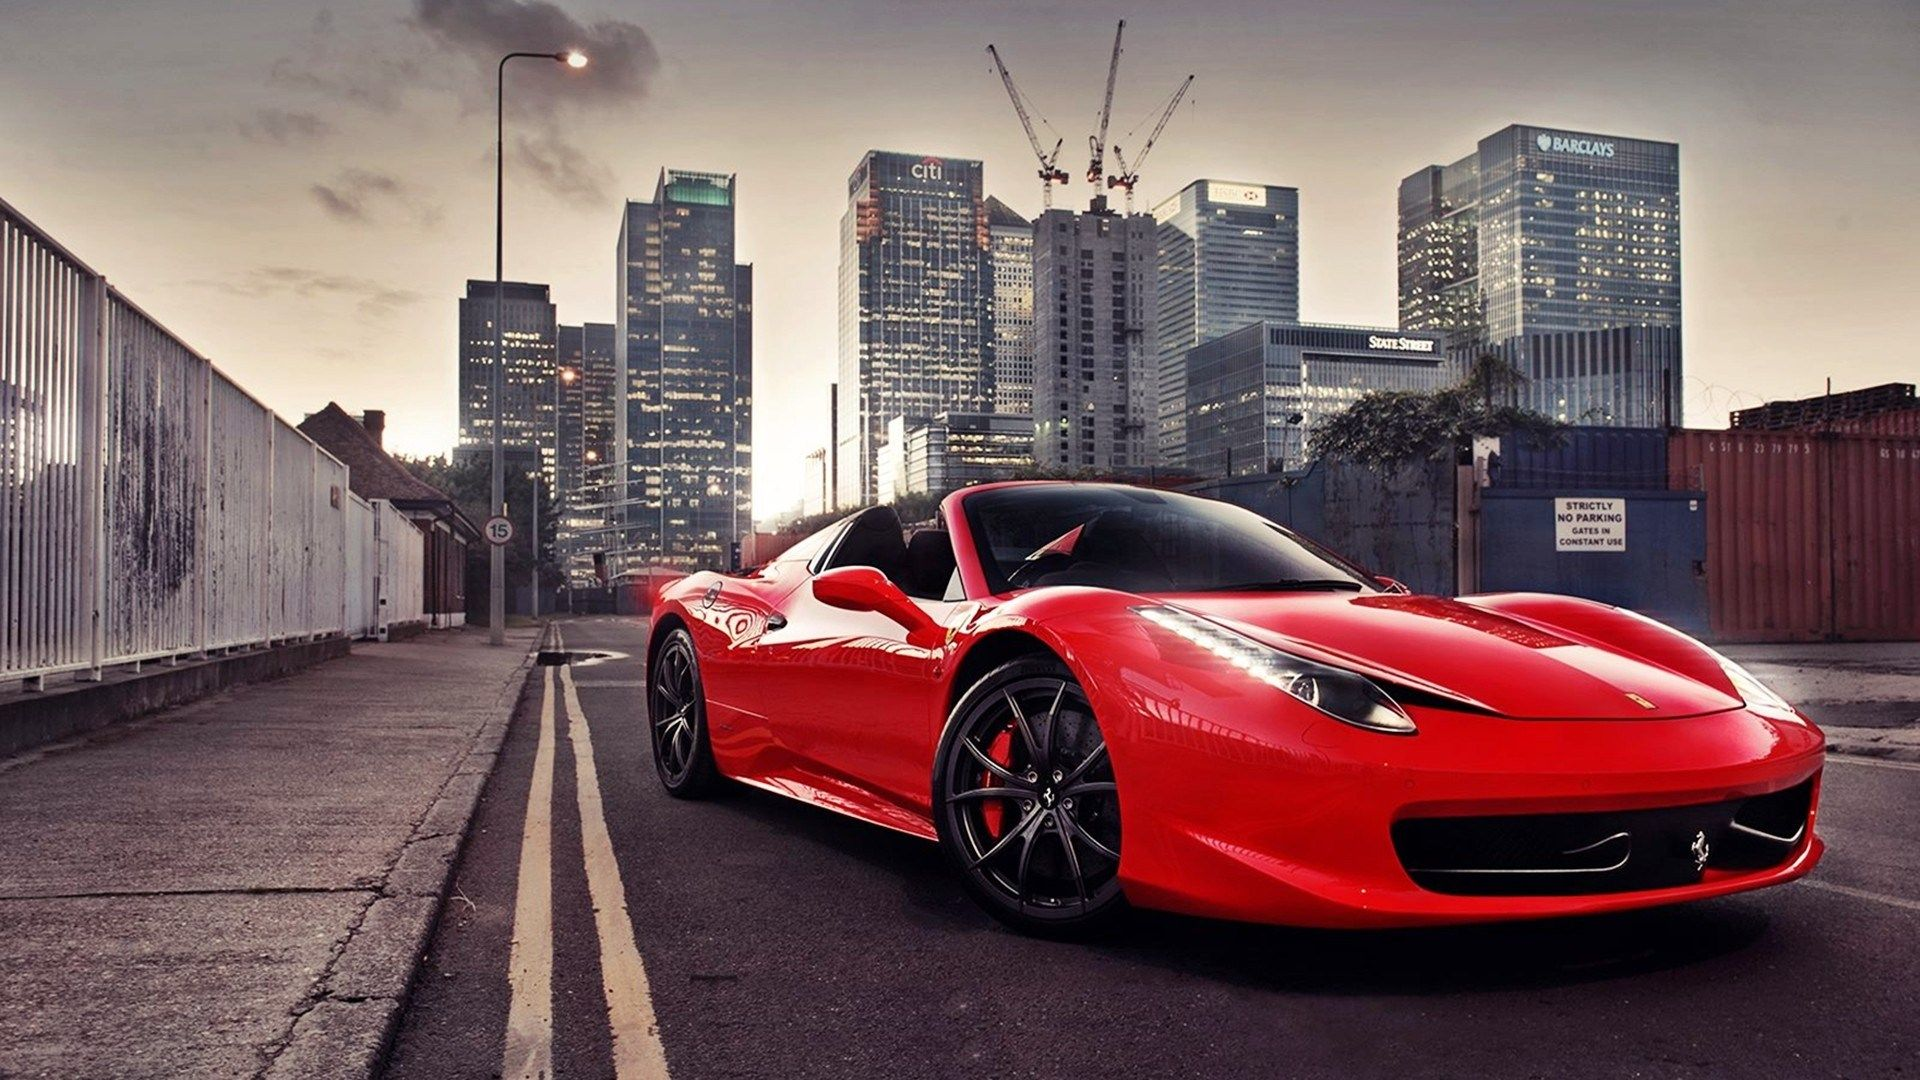 Ferrari Wallpaper Hd Resolution 2z9 With Images Ferrari 458